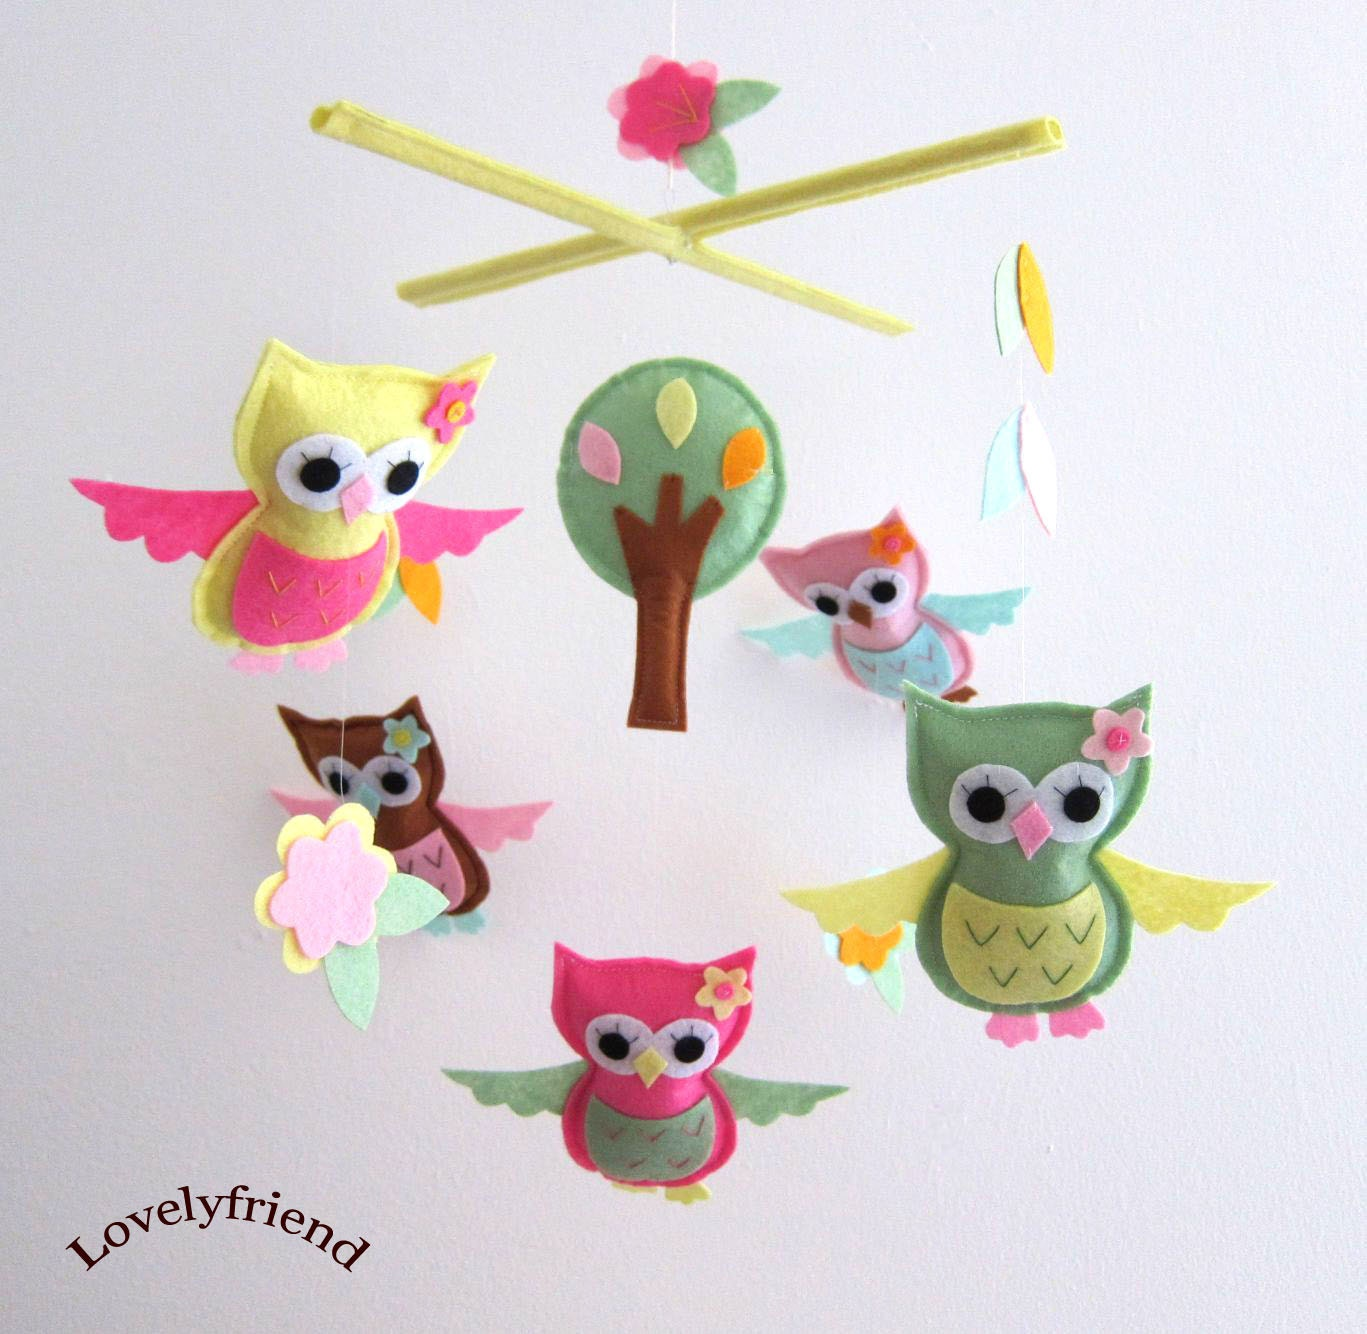 Adesivo Boca De Tubarão ~ Owl Mobiles For Cribs Bananafish Crib Mobile Wow Gifts Baby Mobiles And Nusery Decor 100